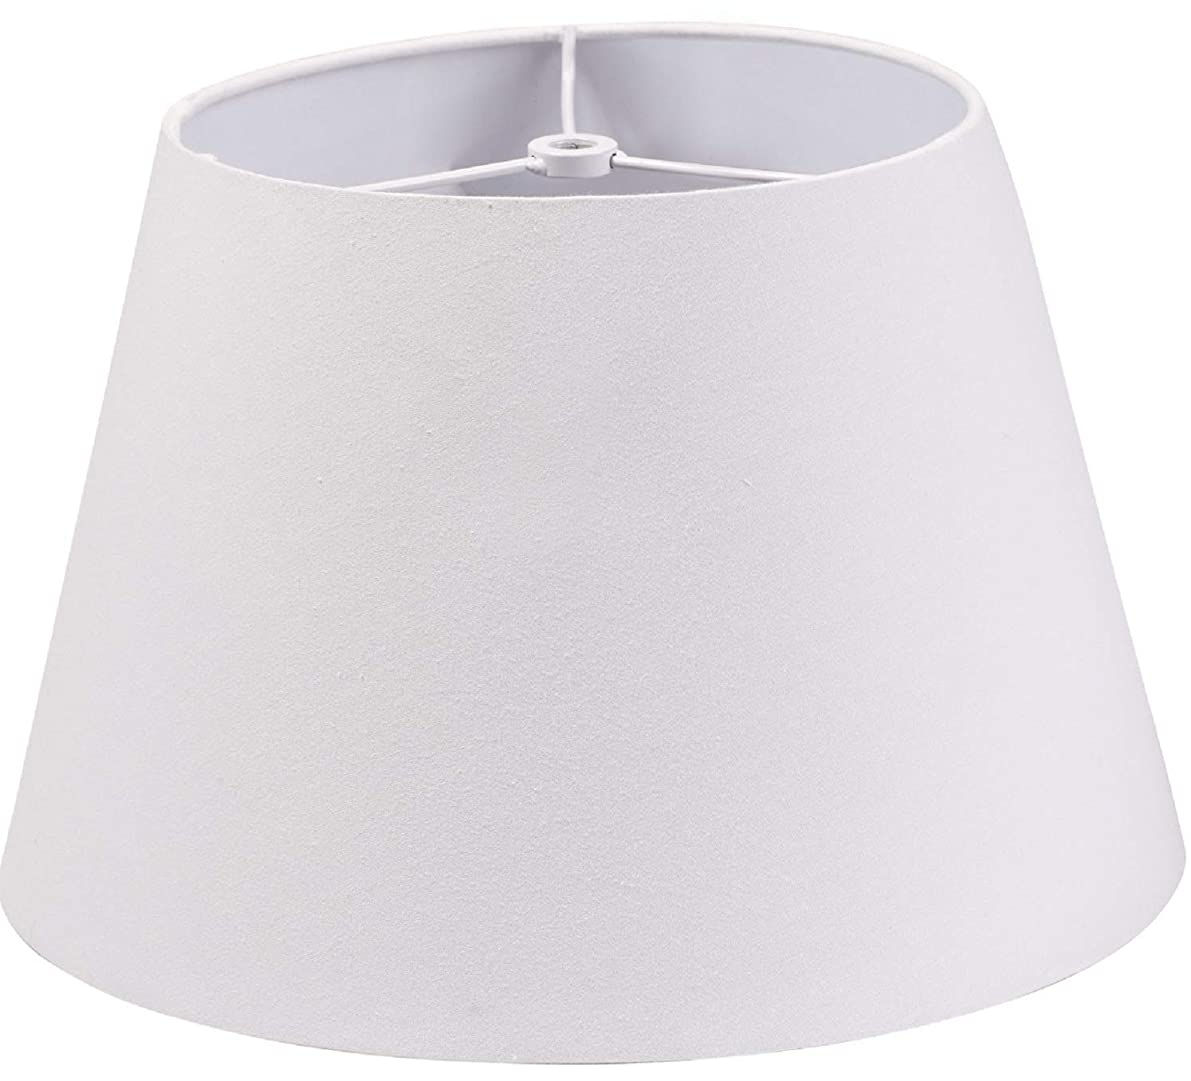 Lamp Shade IMISI Desk Lamp Table Lamp Shade Linen Fabric White Reading Lamp Shades 7.9 X 7.5 X 11.8 Inch Dining Standing White (one-Pack)